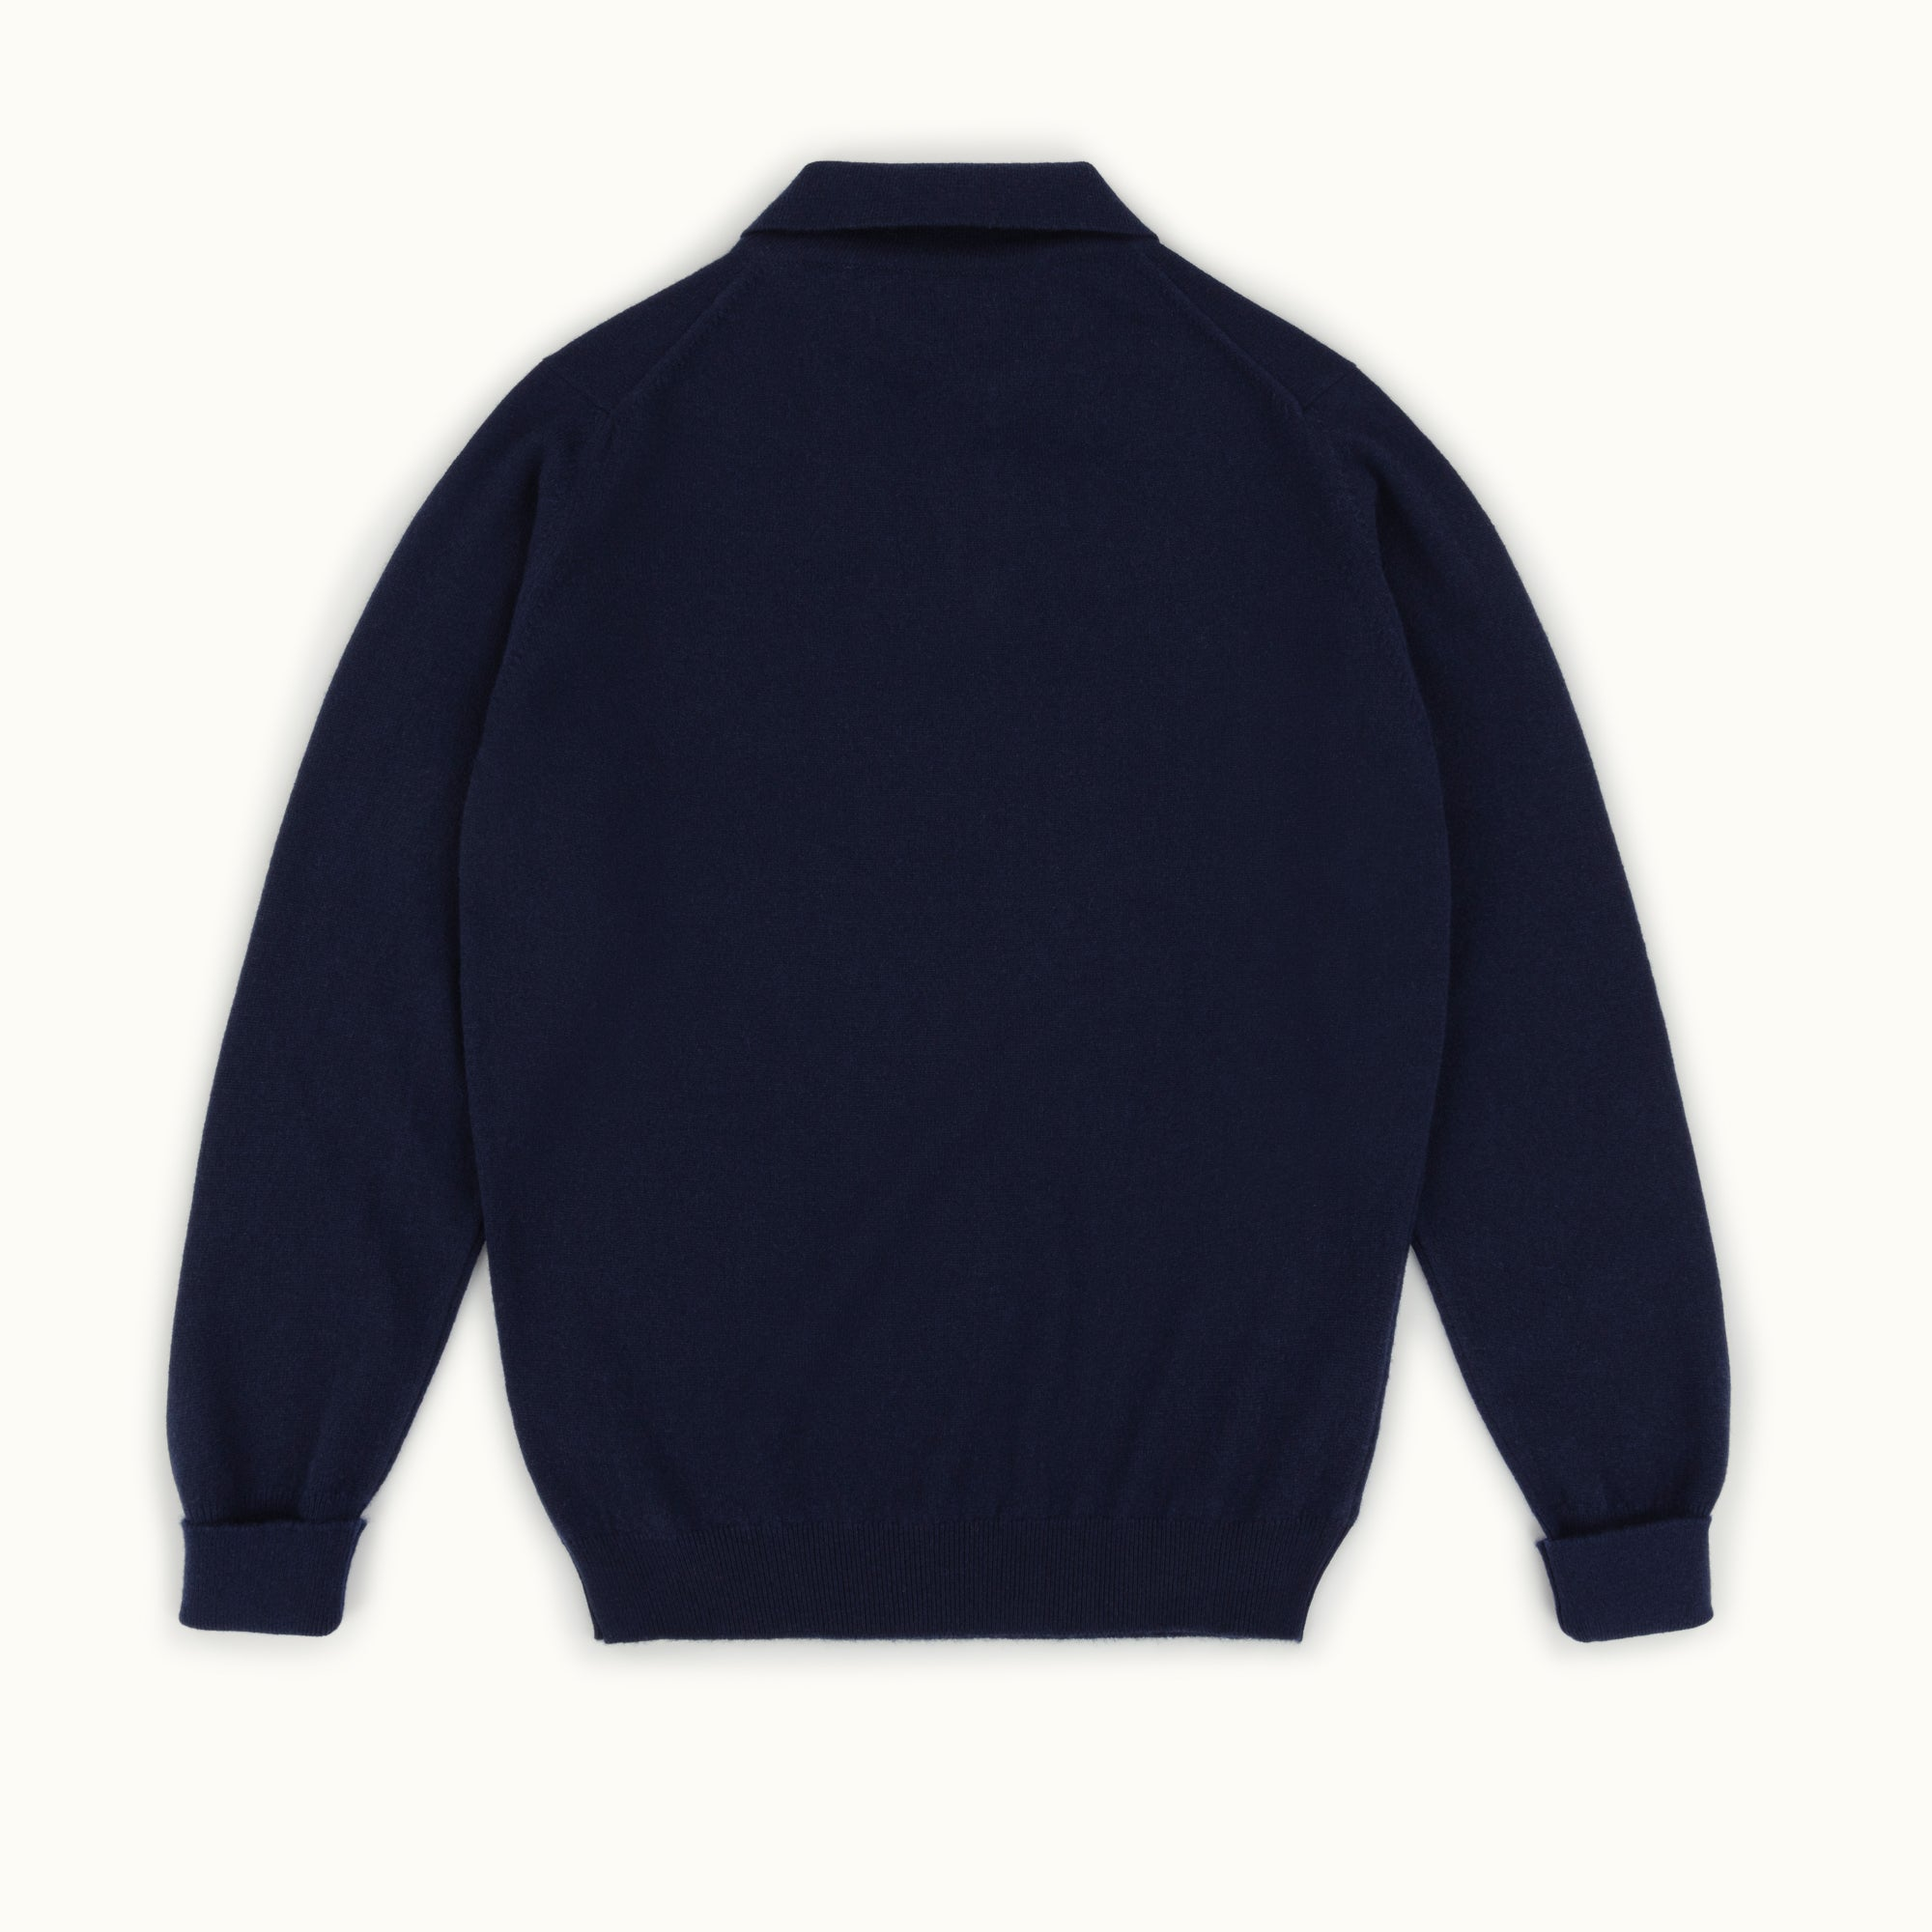 Navy Blue Cashmere Knitted Polo